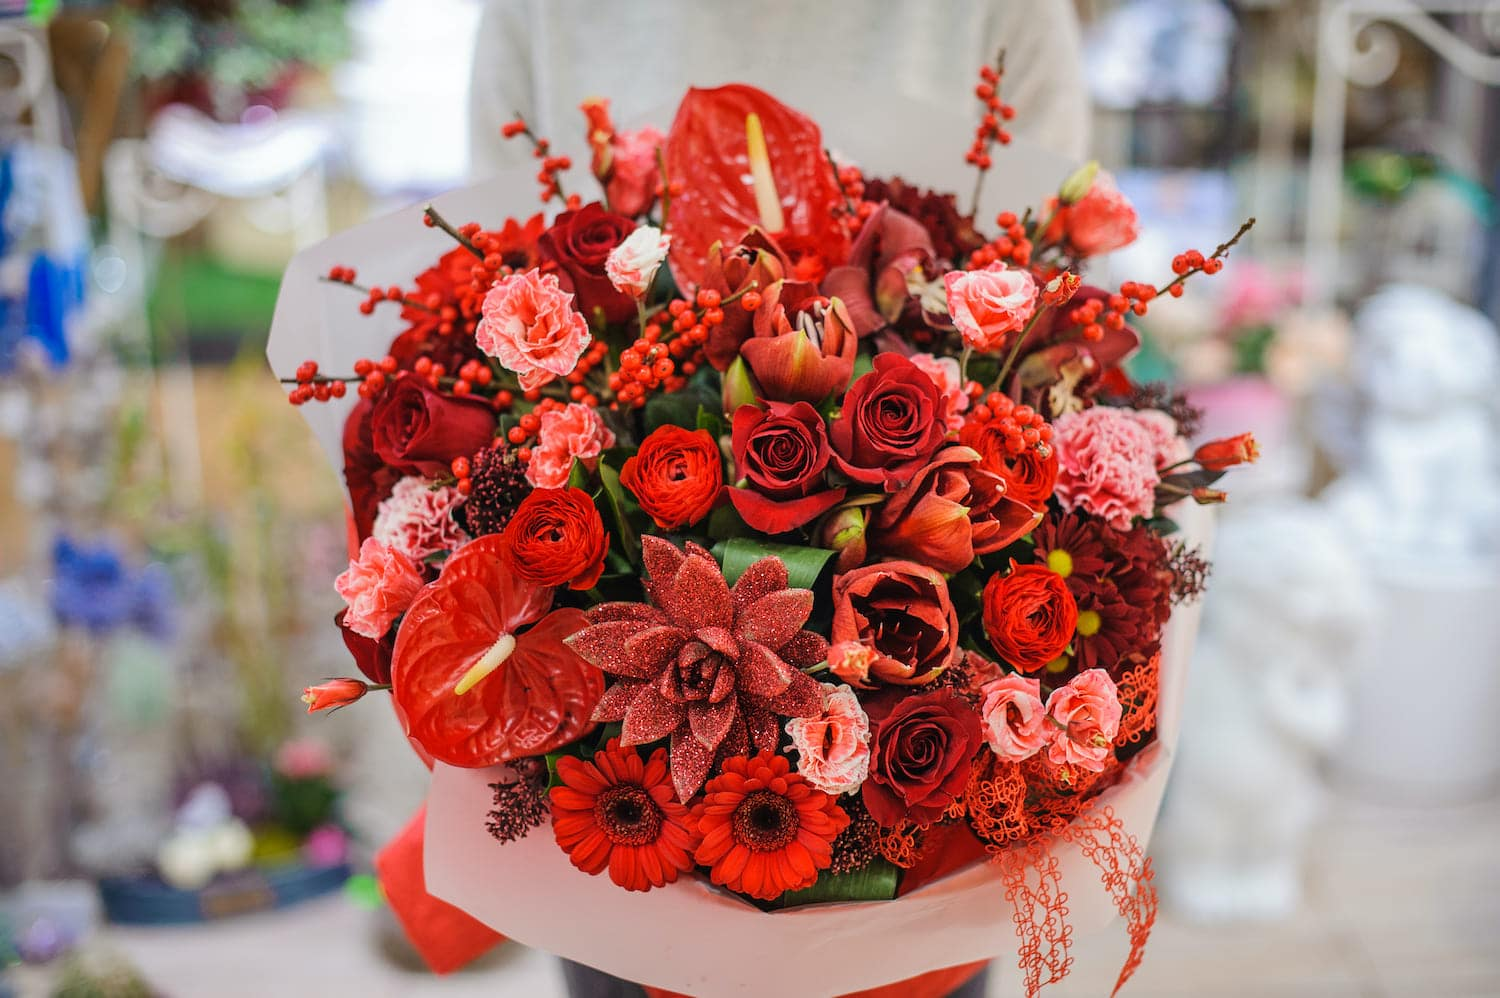 Christmas bouquet of flowers